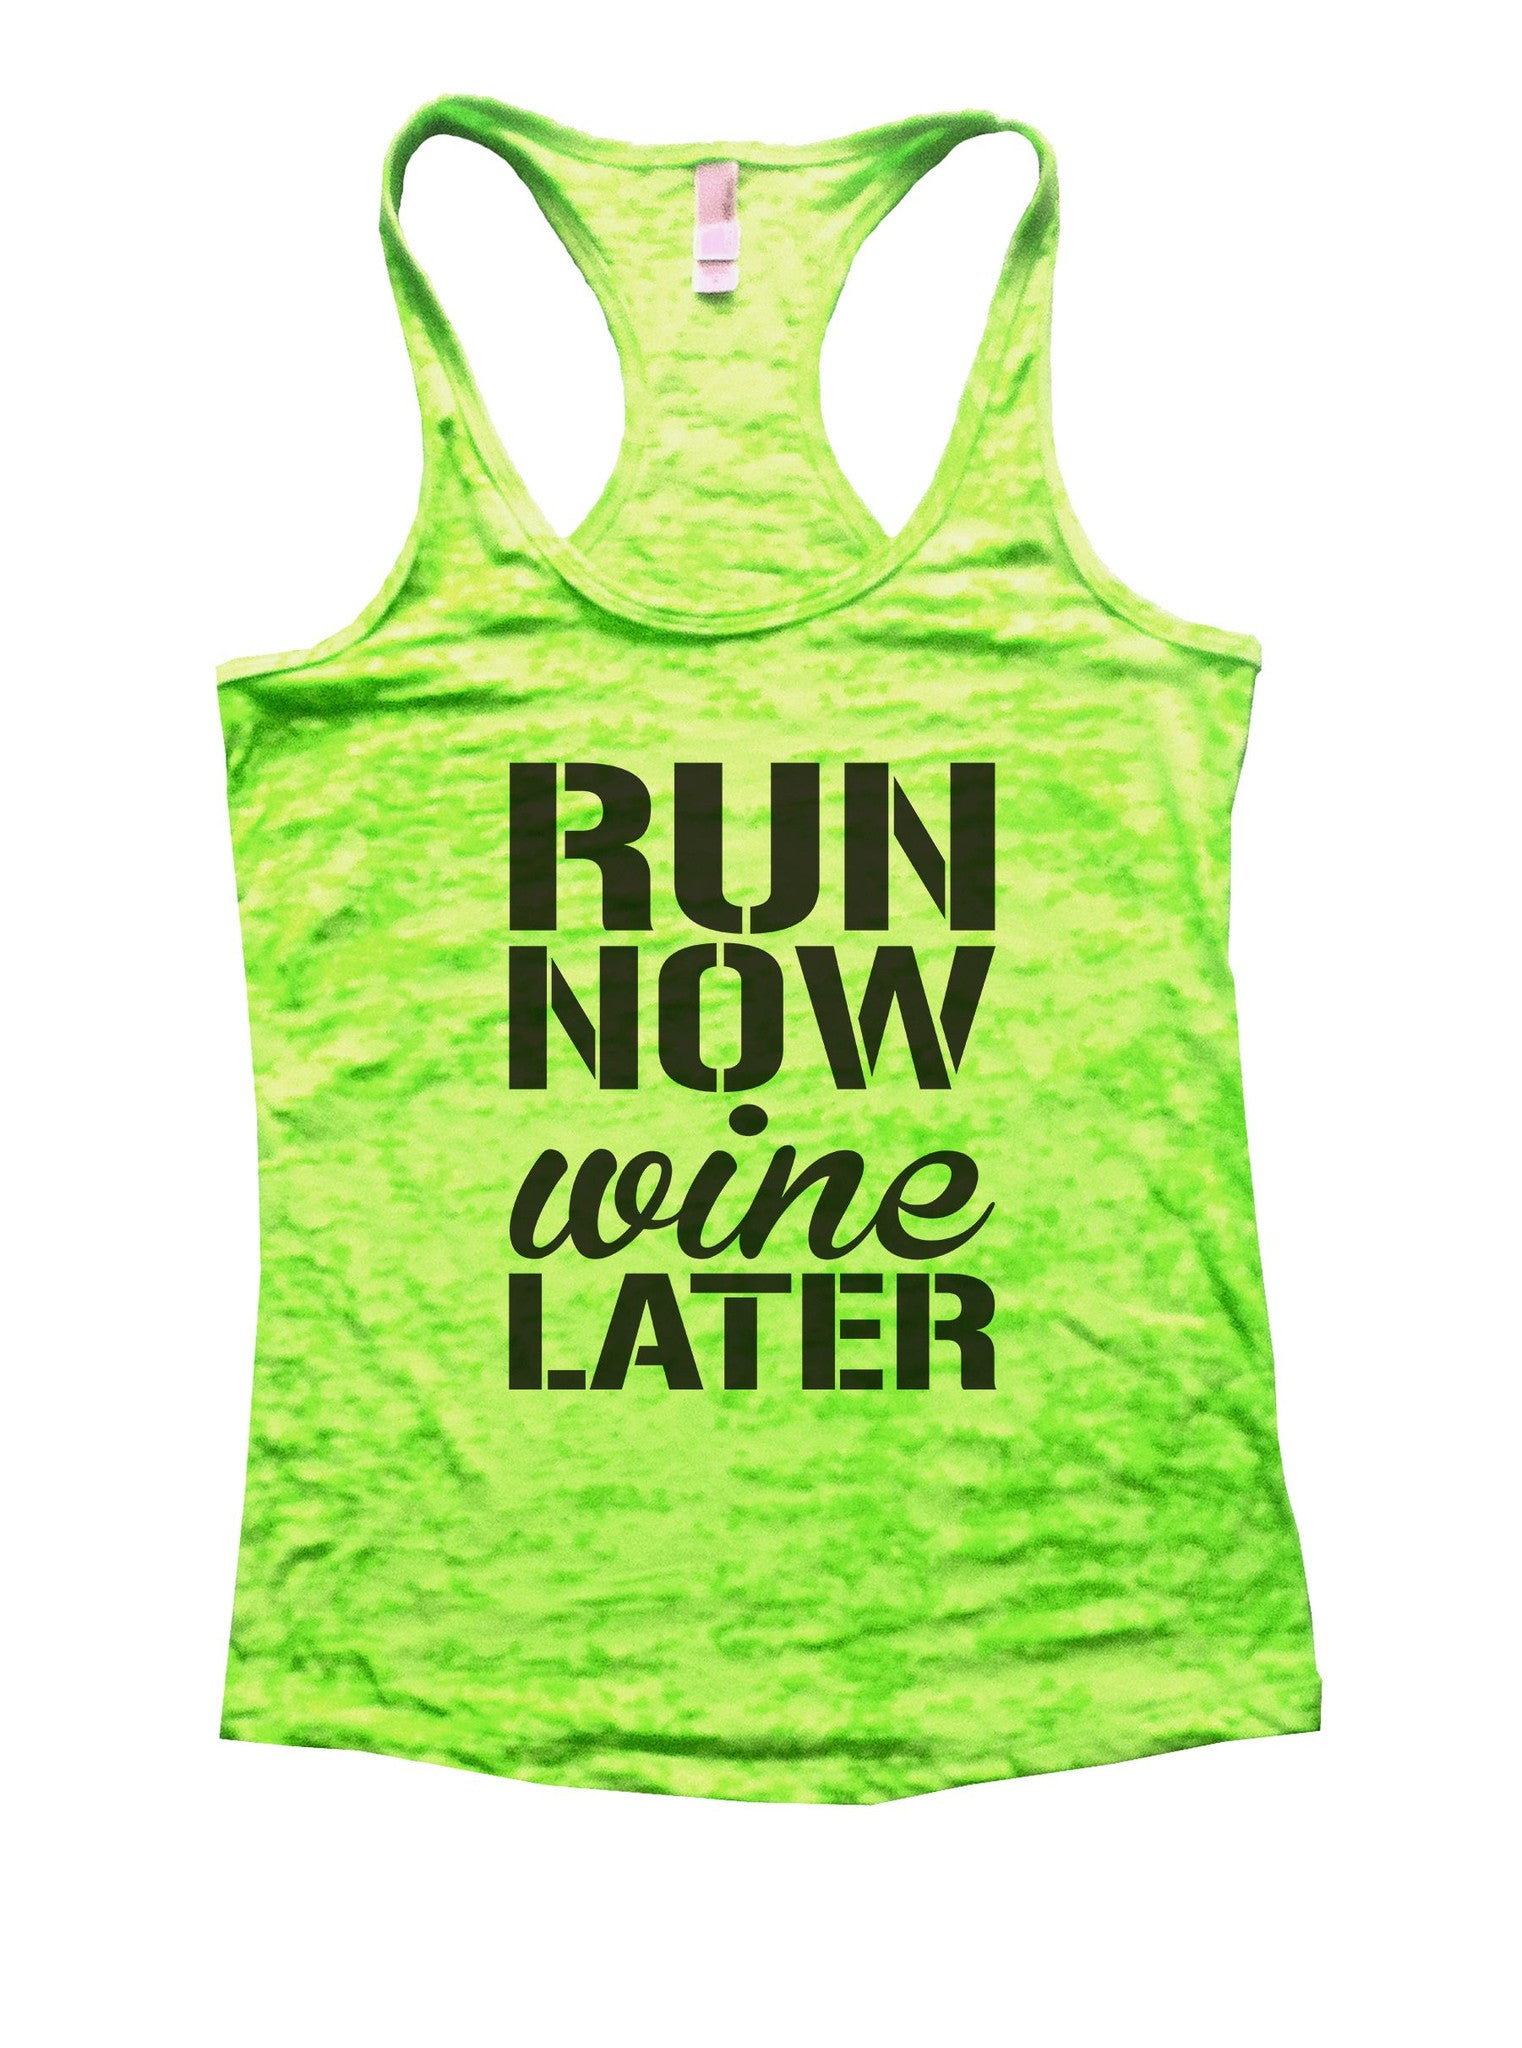 Run Now Wine Later Burnout Tank Top By BurnoutTankTops.com - 951 - Funny Shirts Tank Tops Burnouts and Triblends  - 1